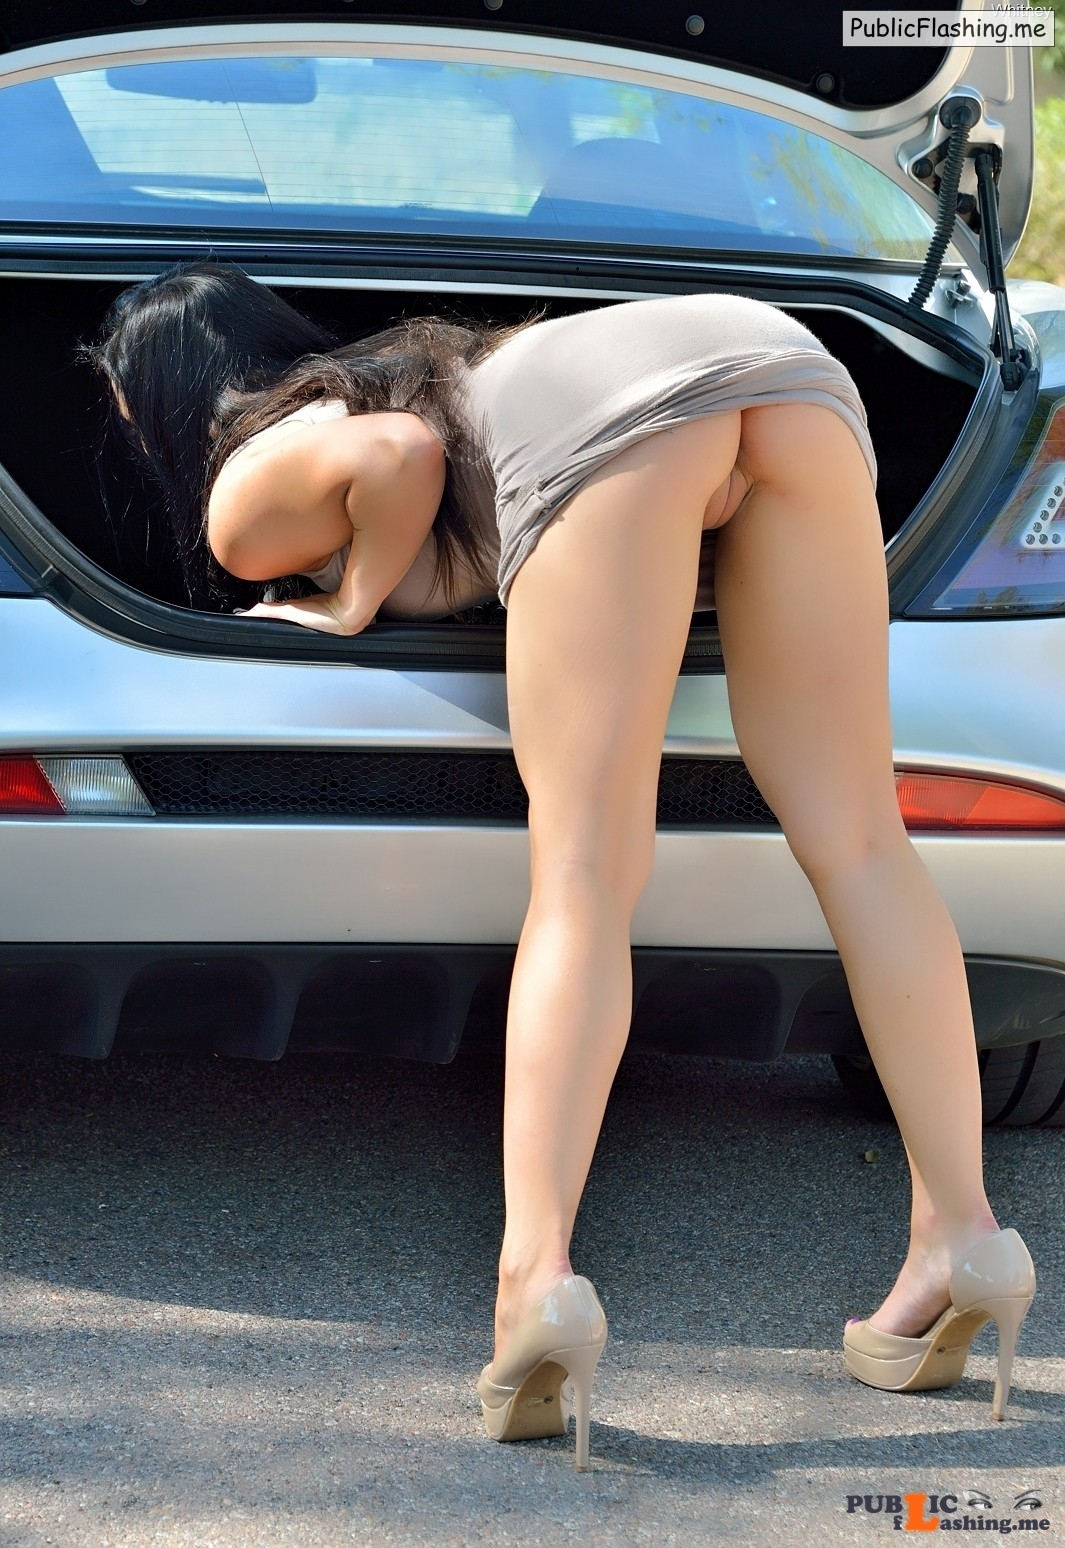 pantieless bend over on parking ass flashing